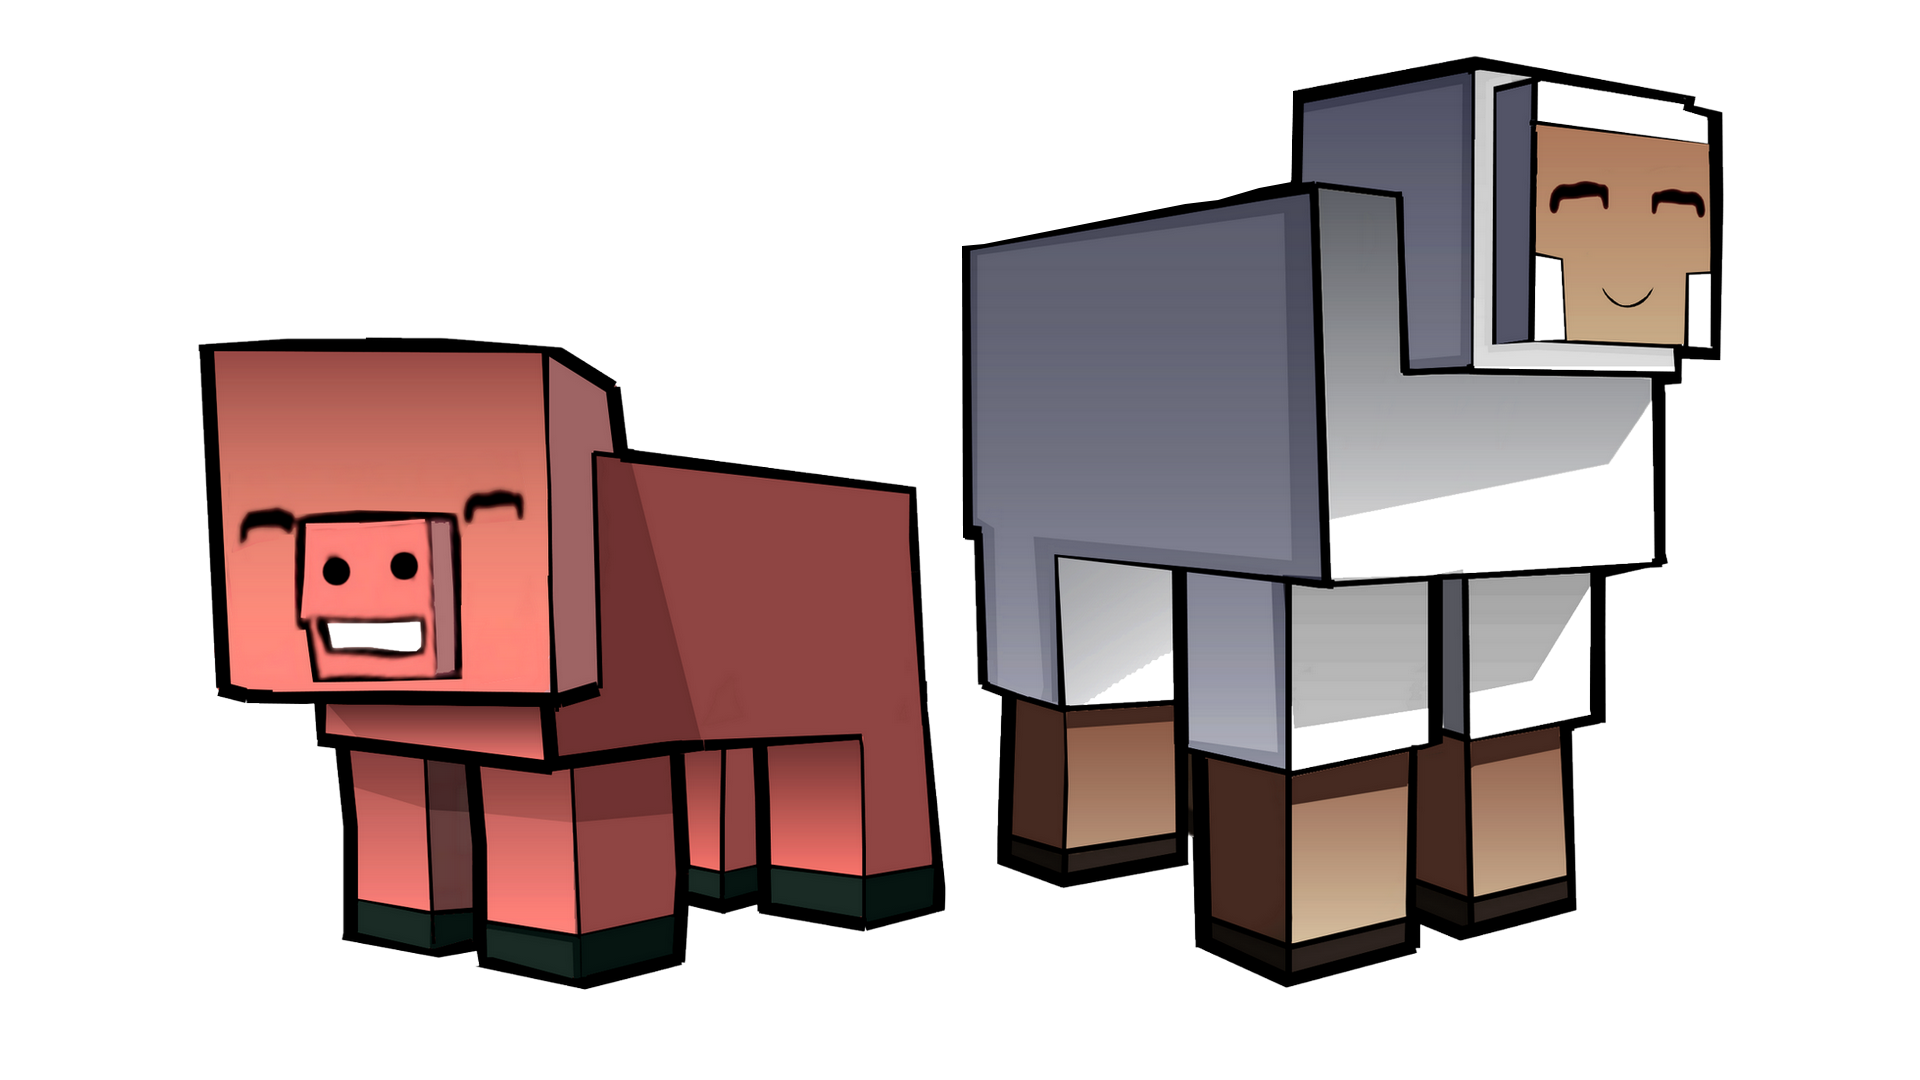 Minecraft Pig and Sheep by Enr1